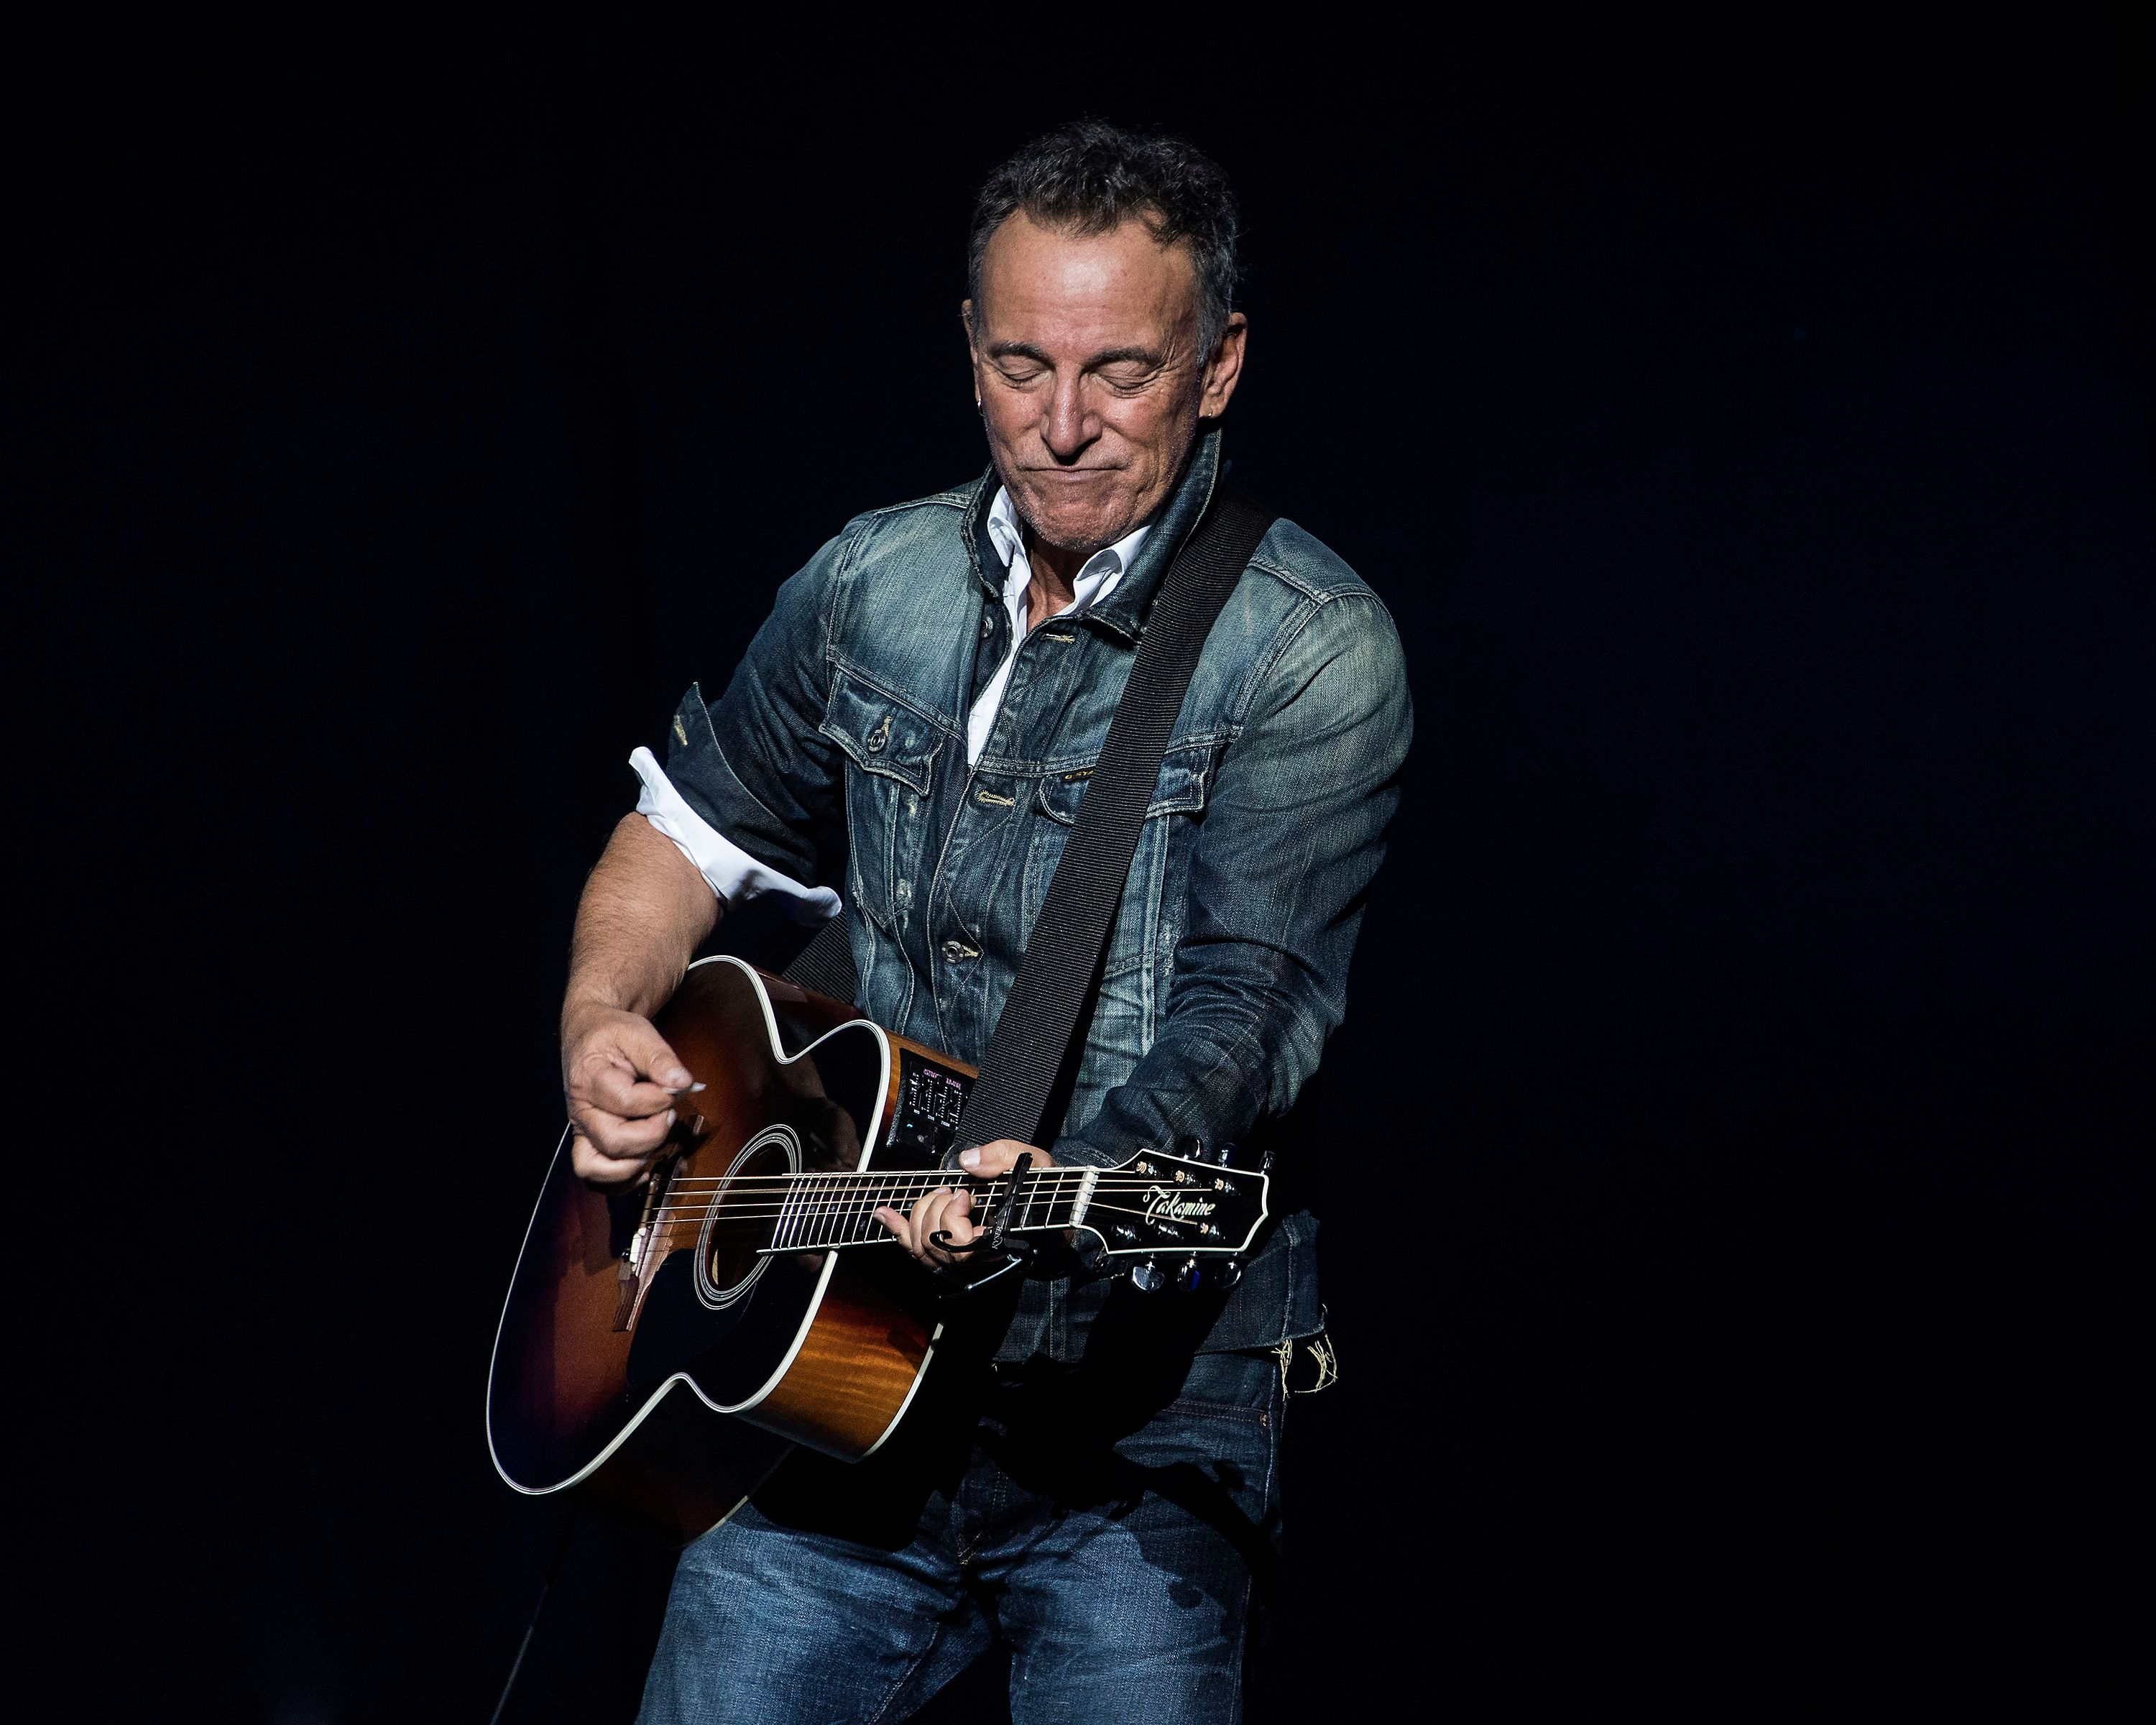 bruce springsteen 39 s new single 39 hello sunshine 39 watch scenic video rolling stone. Black Bedroom Furniture Sets. Home Design Ideas